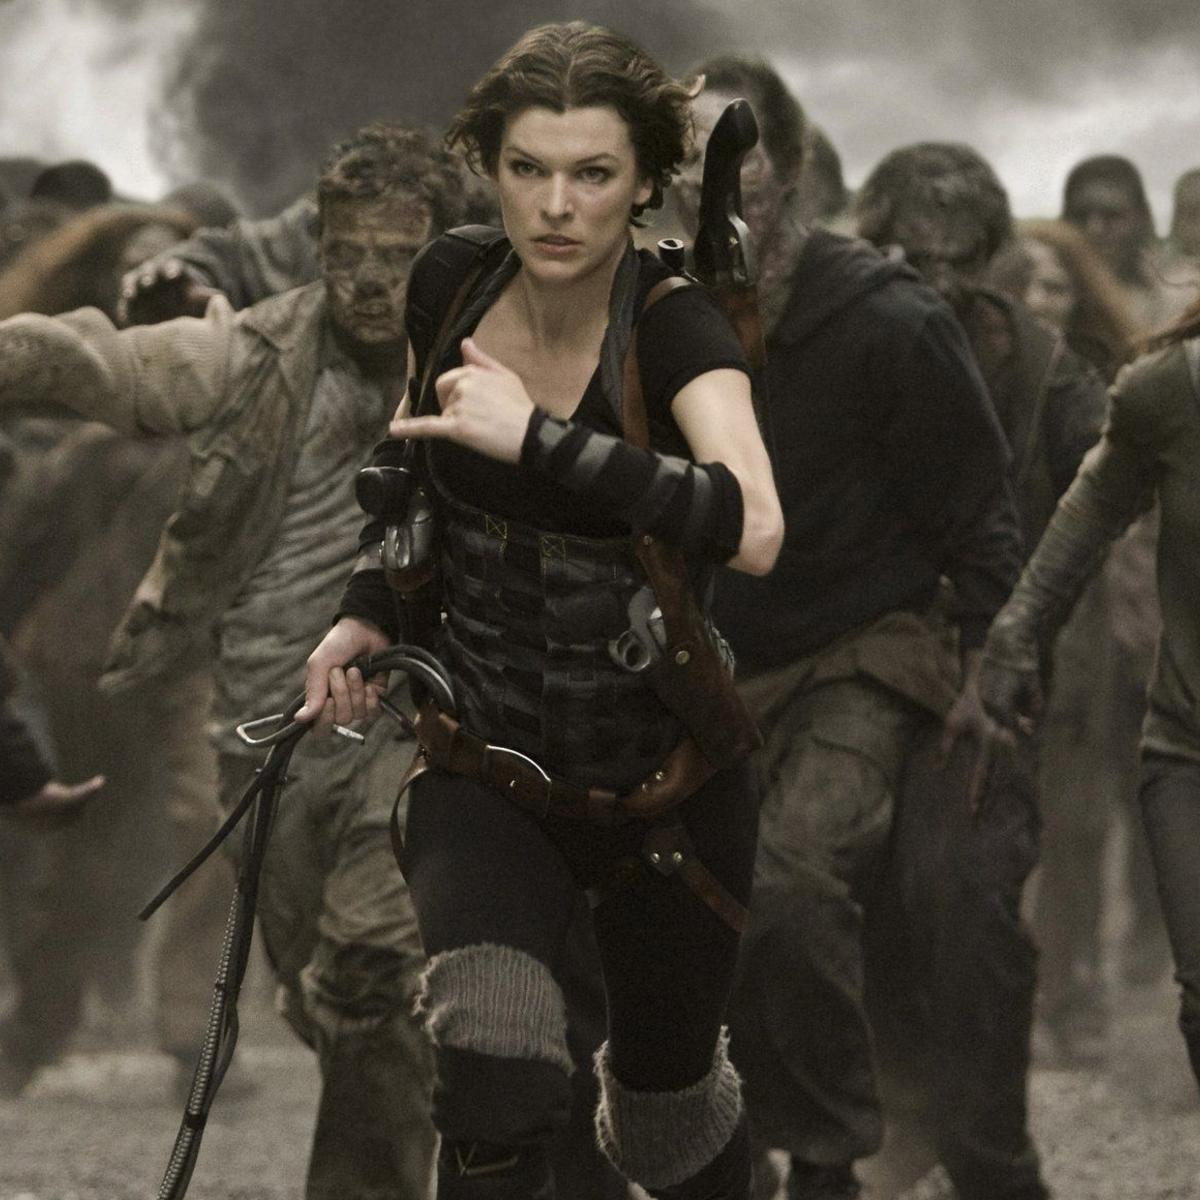 resident-evil-the-final-chapter-promo-shot.png